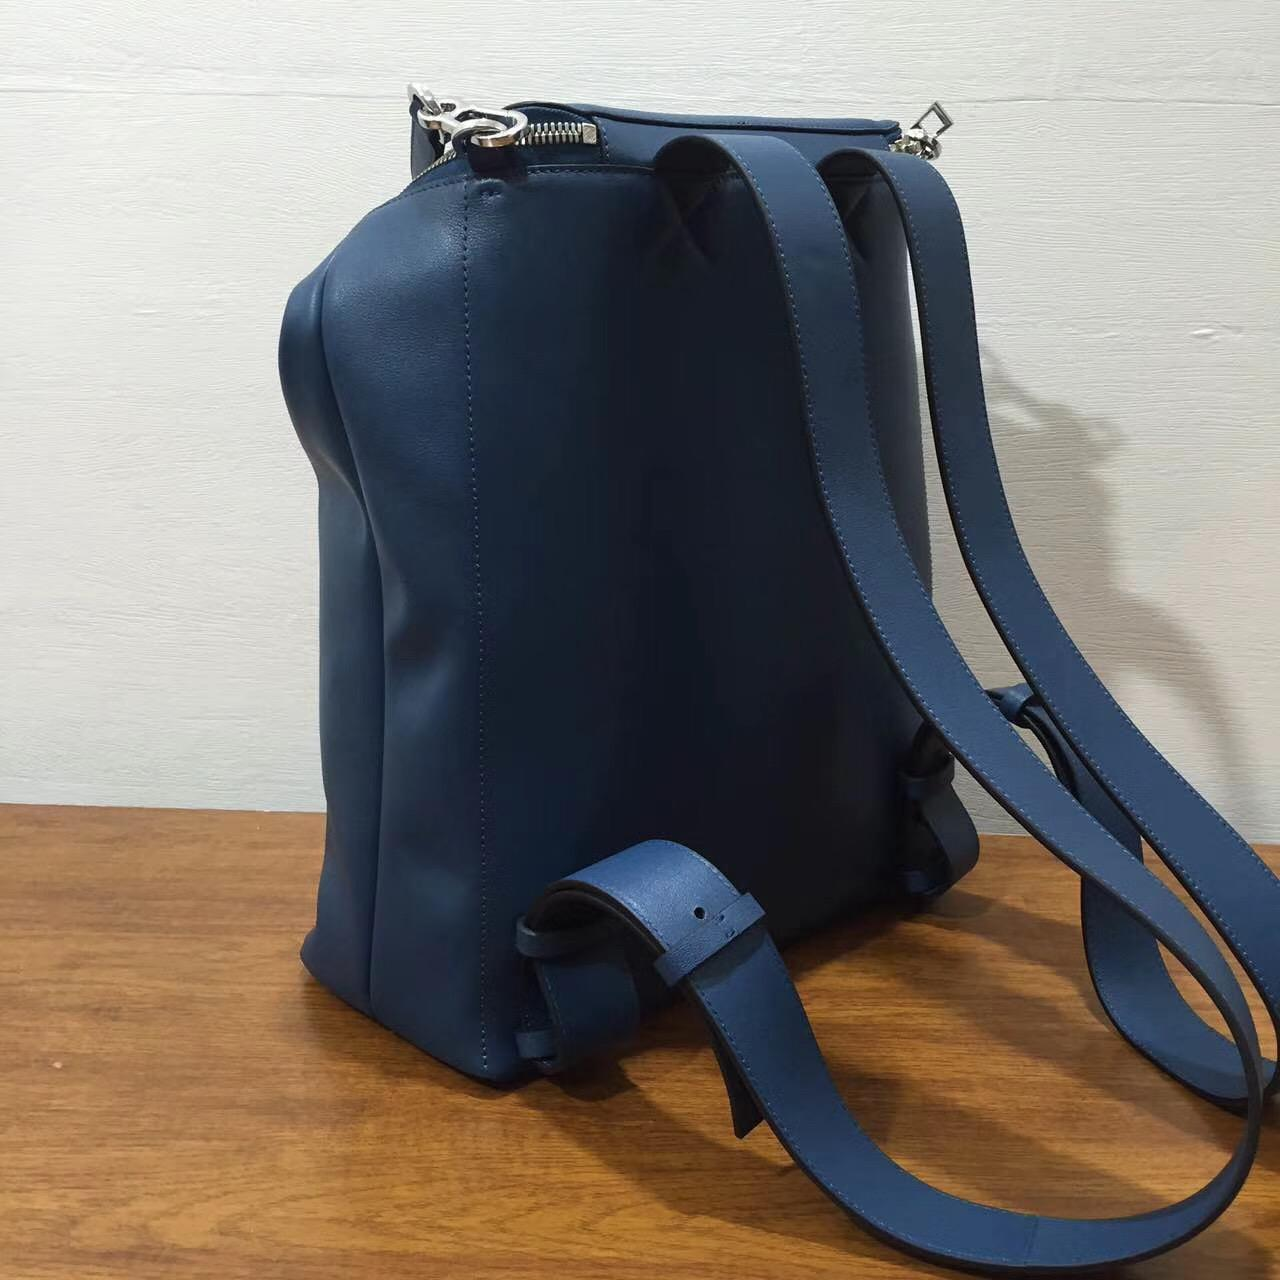 loewe羅意威Goya Backpack bag 蓝色 小牛皮 Goya男士双肩背包